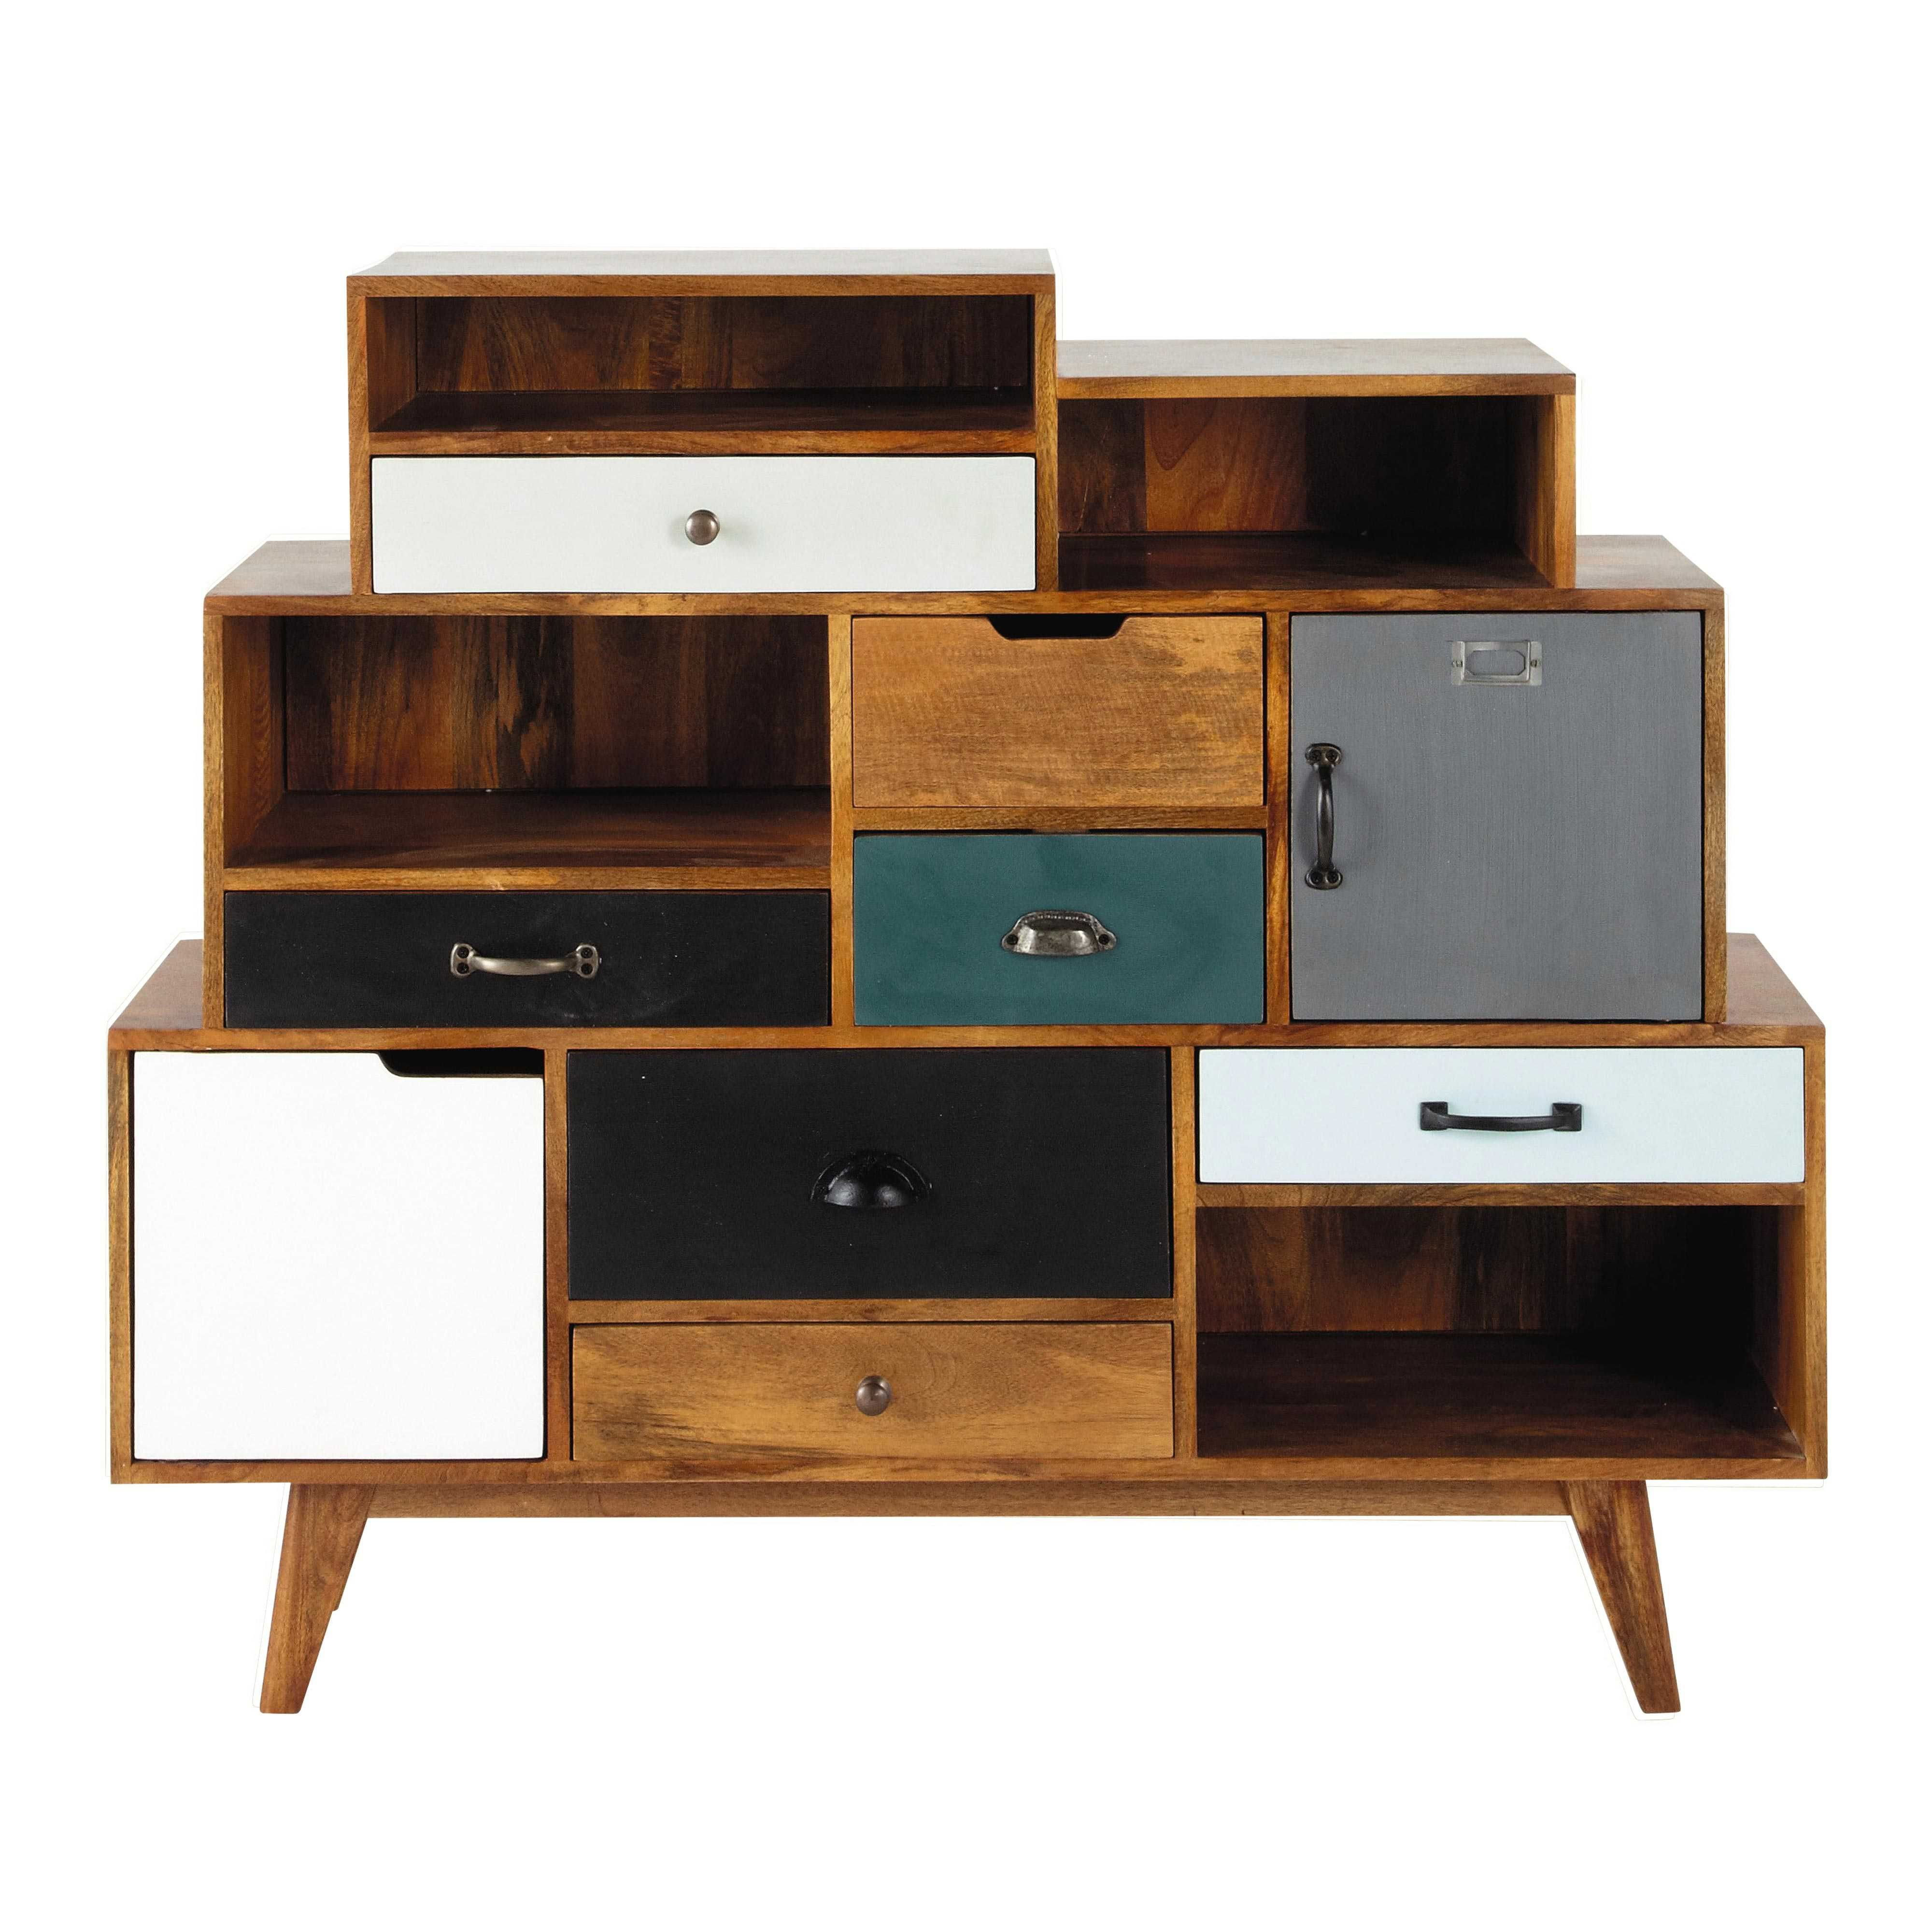 kommode im vintage stil aus massivem mangoholz b 125 cm. Black Bedroom Furniture Sets. Home Design Ideas